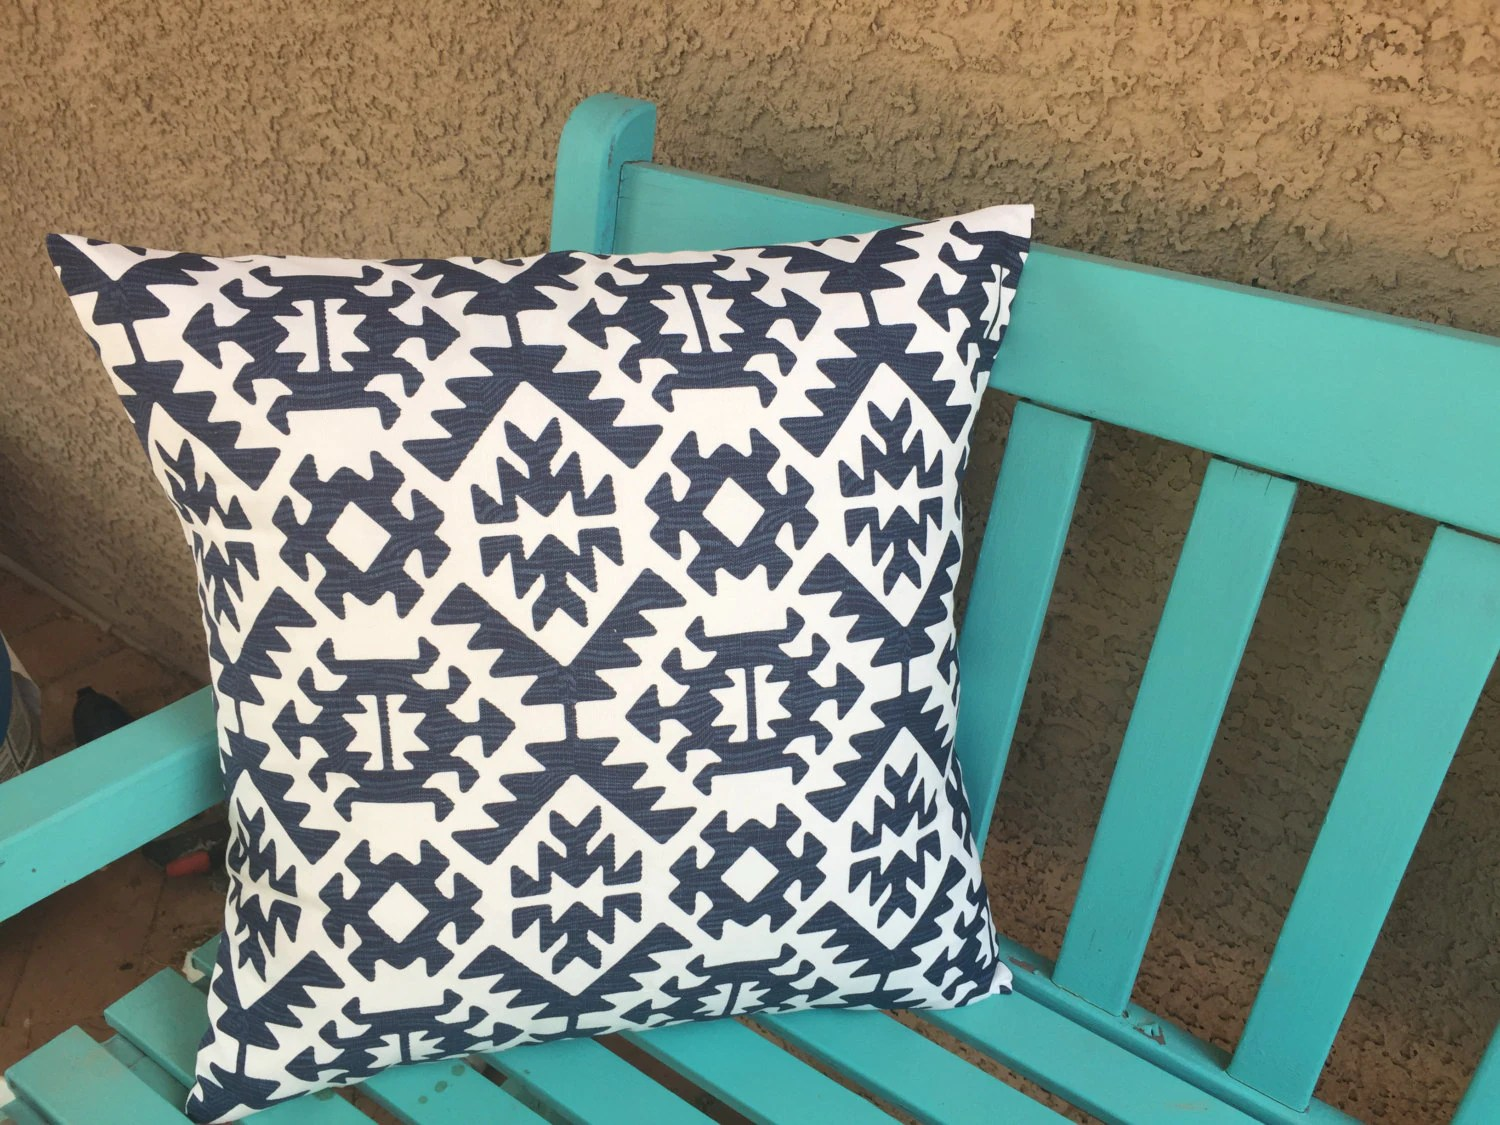 20 x 20 Inch Pillow Cover 20x20 Pillow Cover 20 by